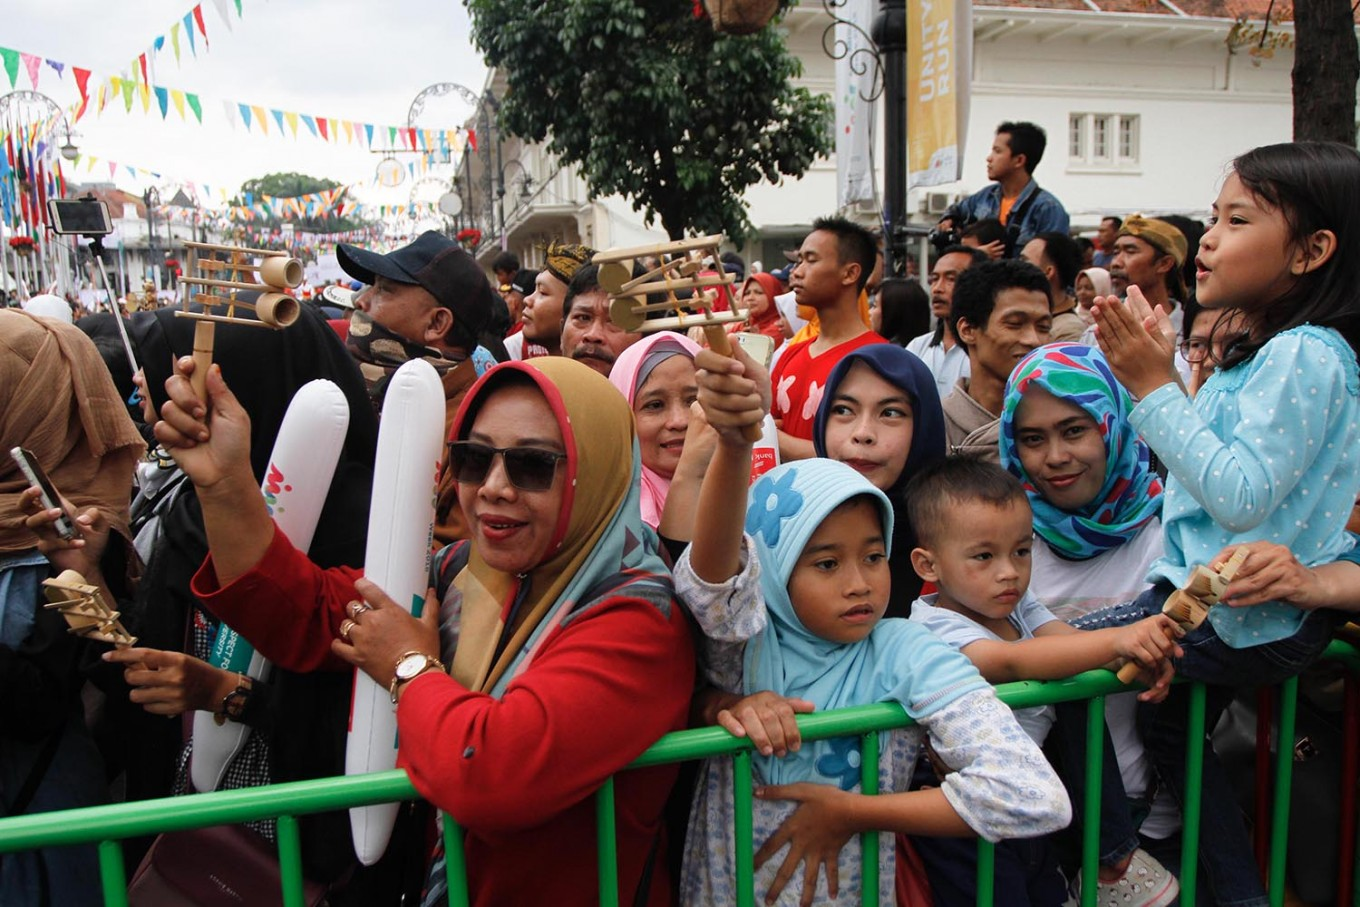 Thousands of visitors line up along Jl. Asia Africa to watch the carnival. JP/Arya Dipa